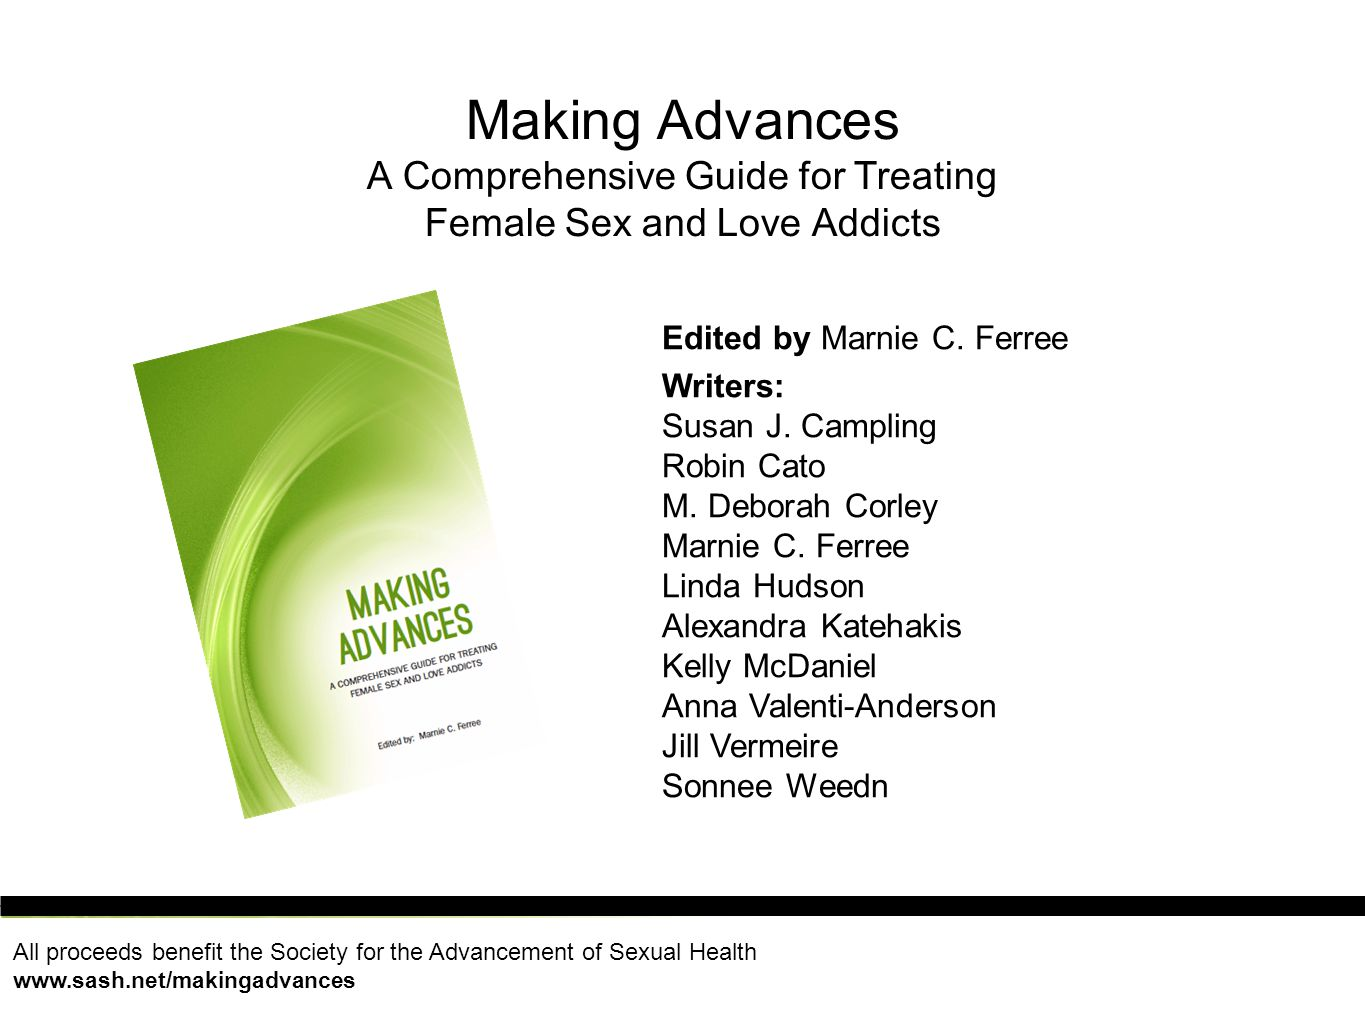 Making Advances A Comprehensive Guide for Treating Female Sex and Love Addicts